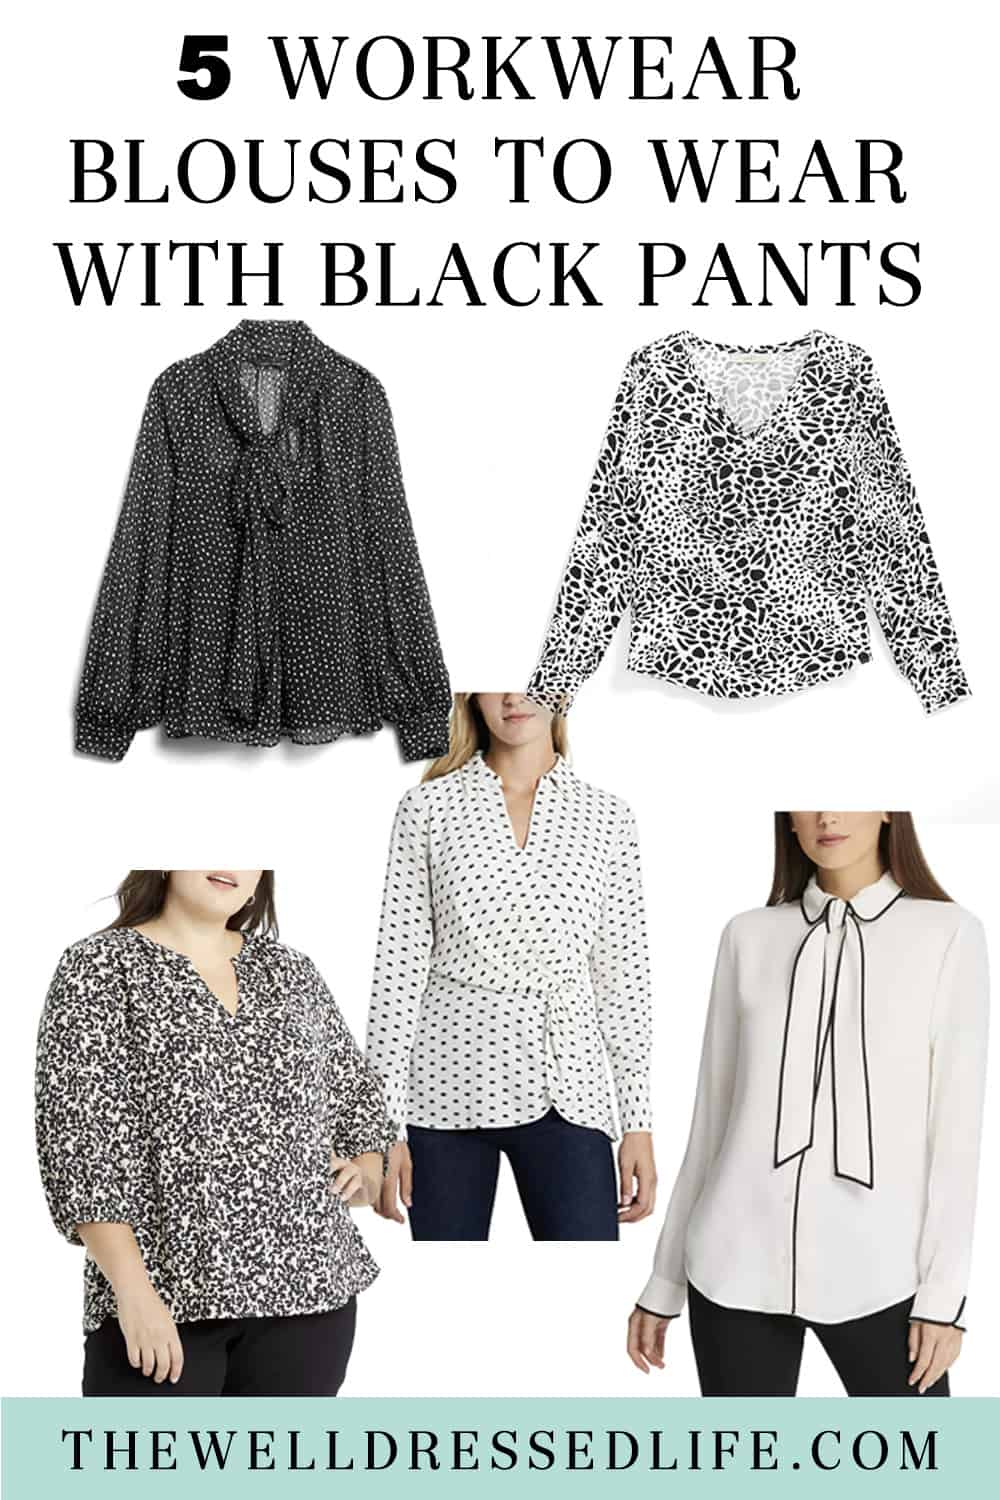 5 Workwear Blouses to Wear with Black Pants